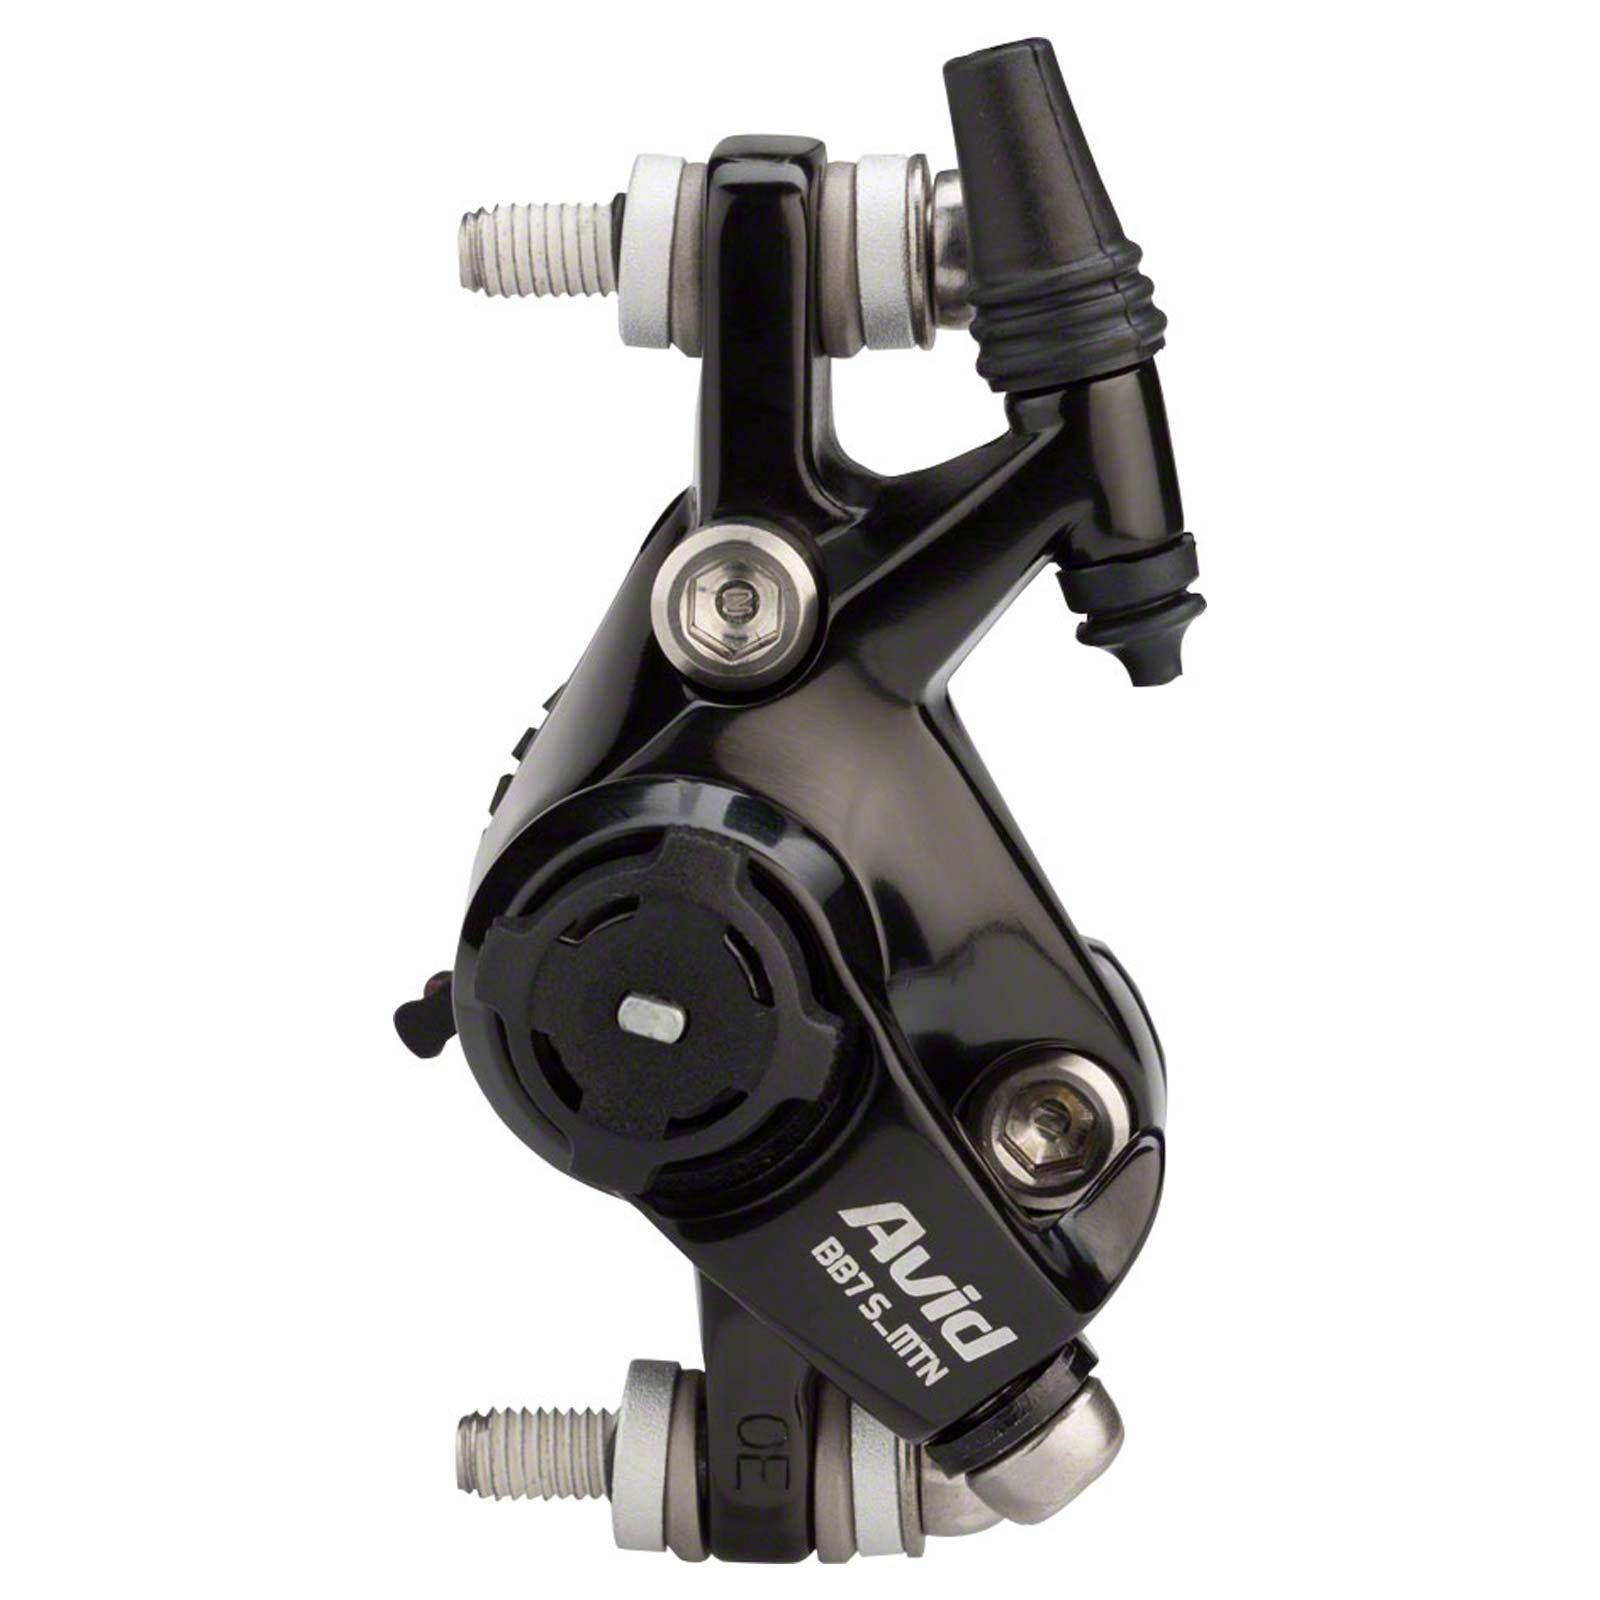 Avid BB7 MTB S Disc Brake Caliper